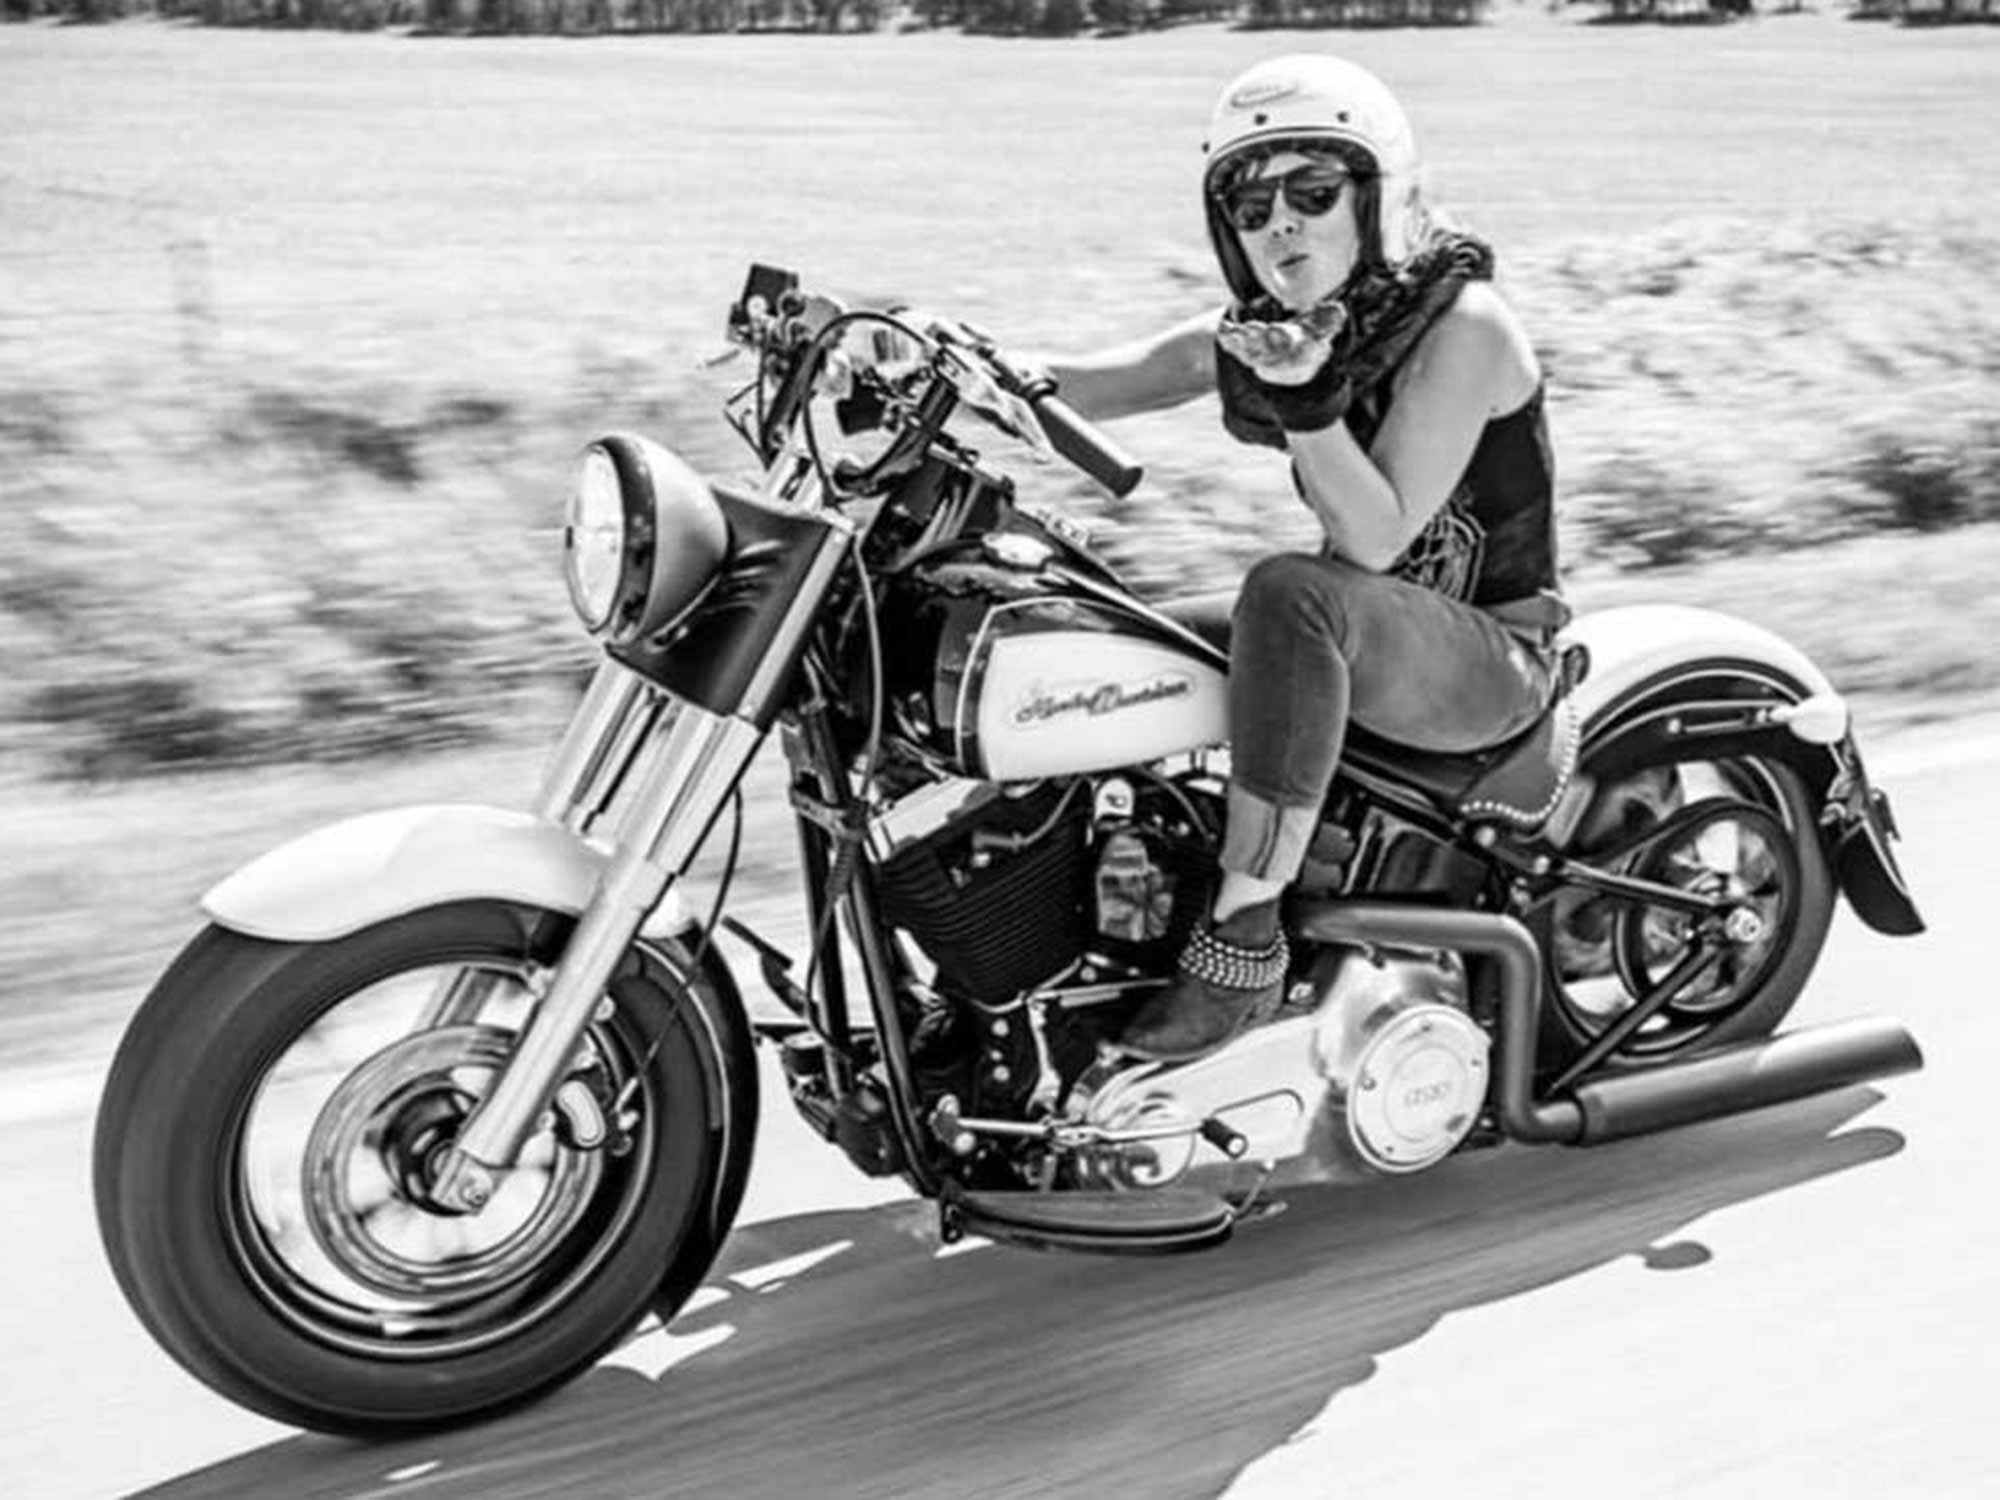 A year after her crash in the Oregon desert, Guinness awards Jessi Combs the fastest land-speed record.